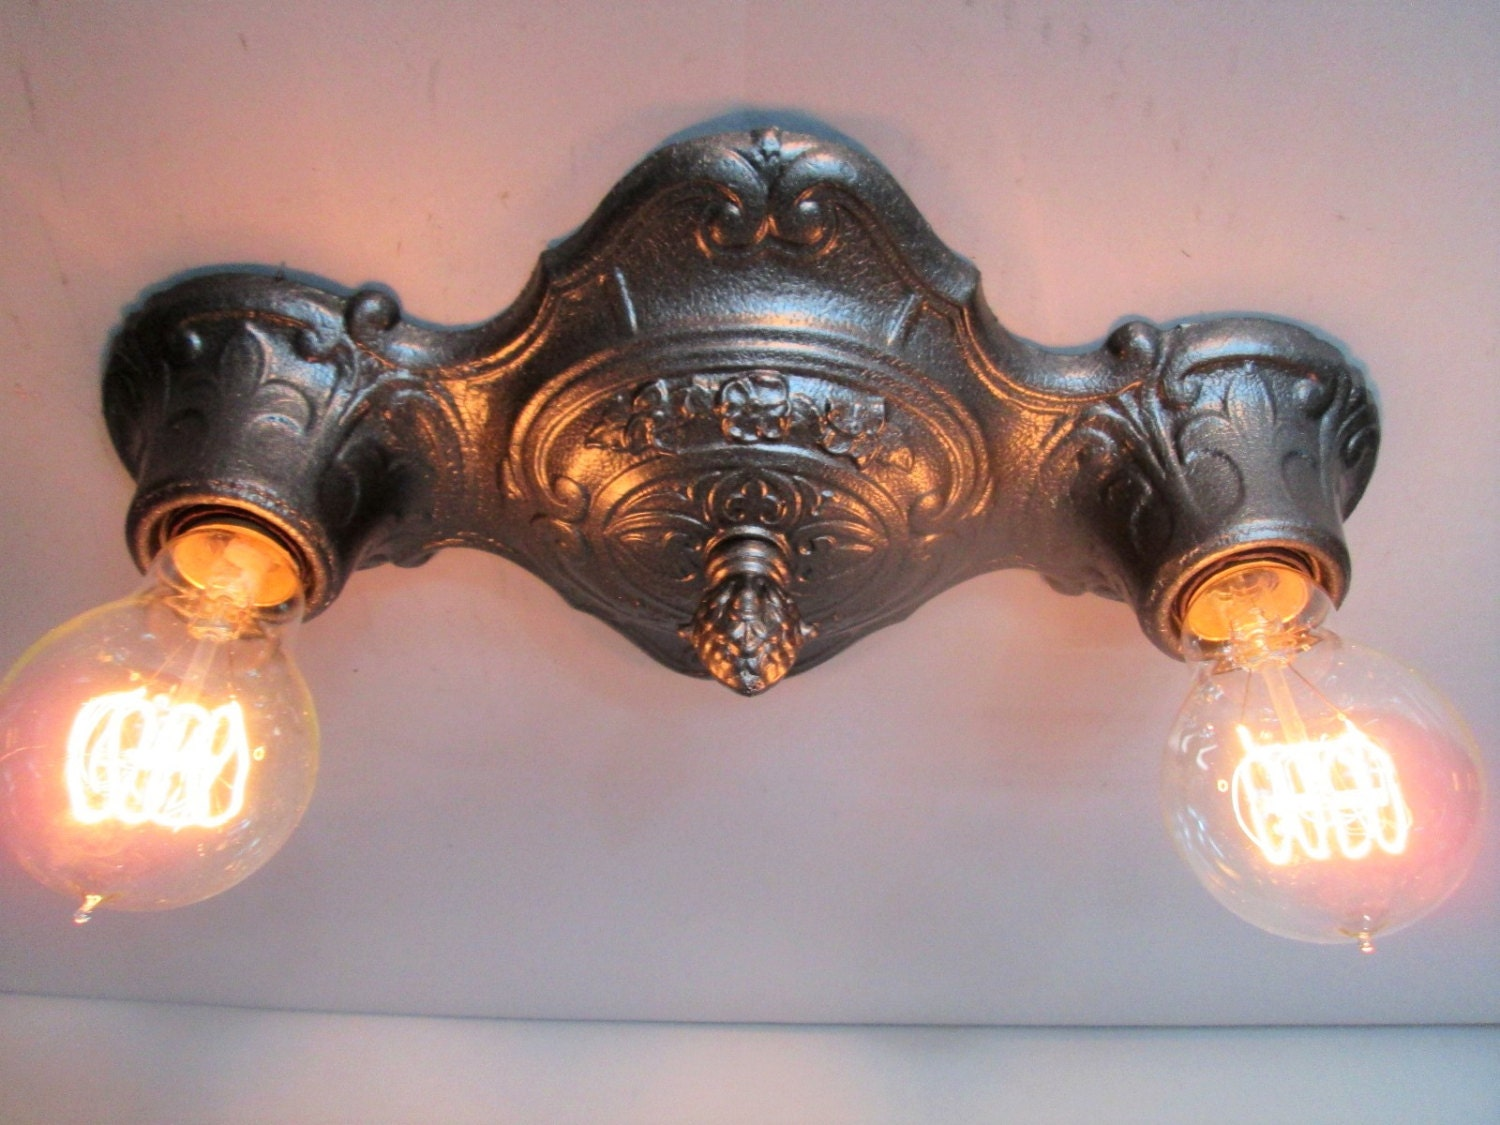 Westmenlights Vintage Small Ceiling Light Flush Mount: Vintage Art Deco Flush Mount Ceiling Light 1920's Ornate